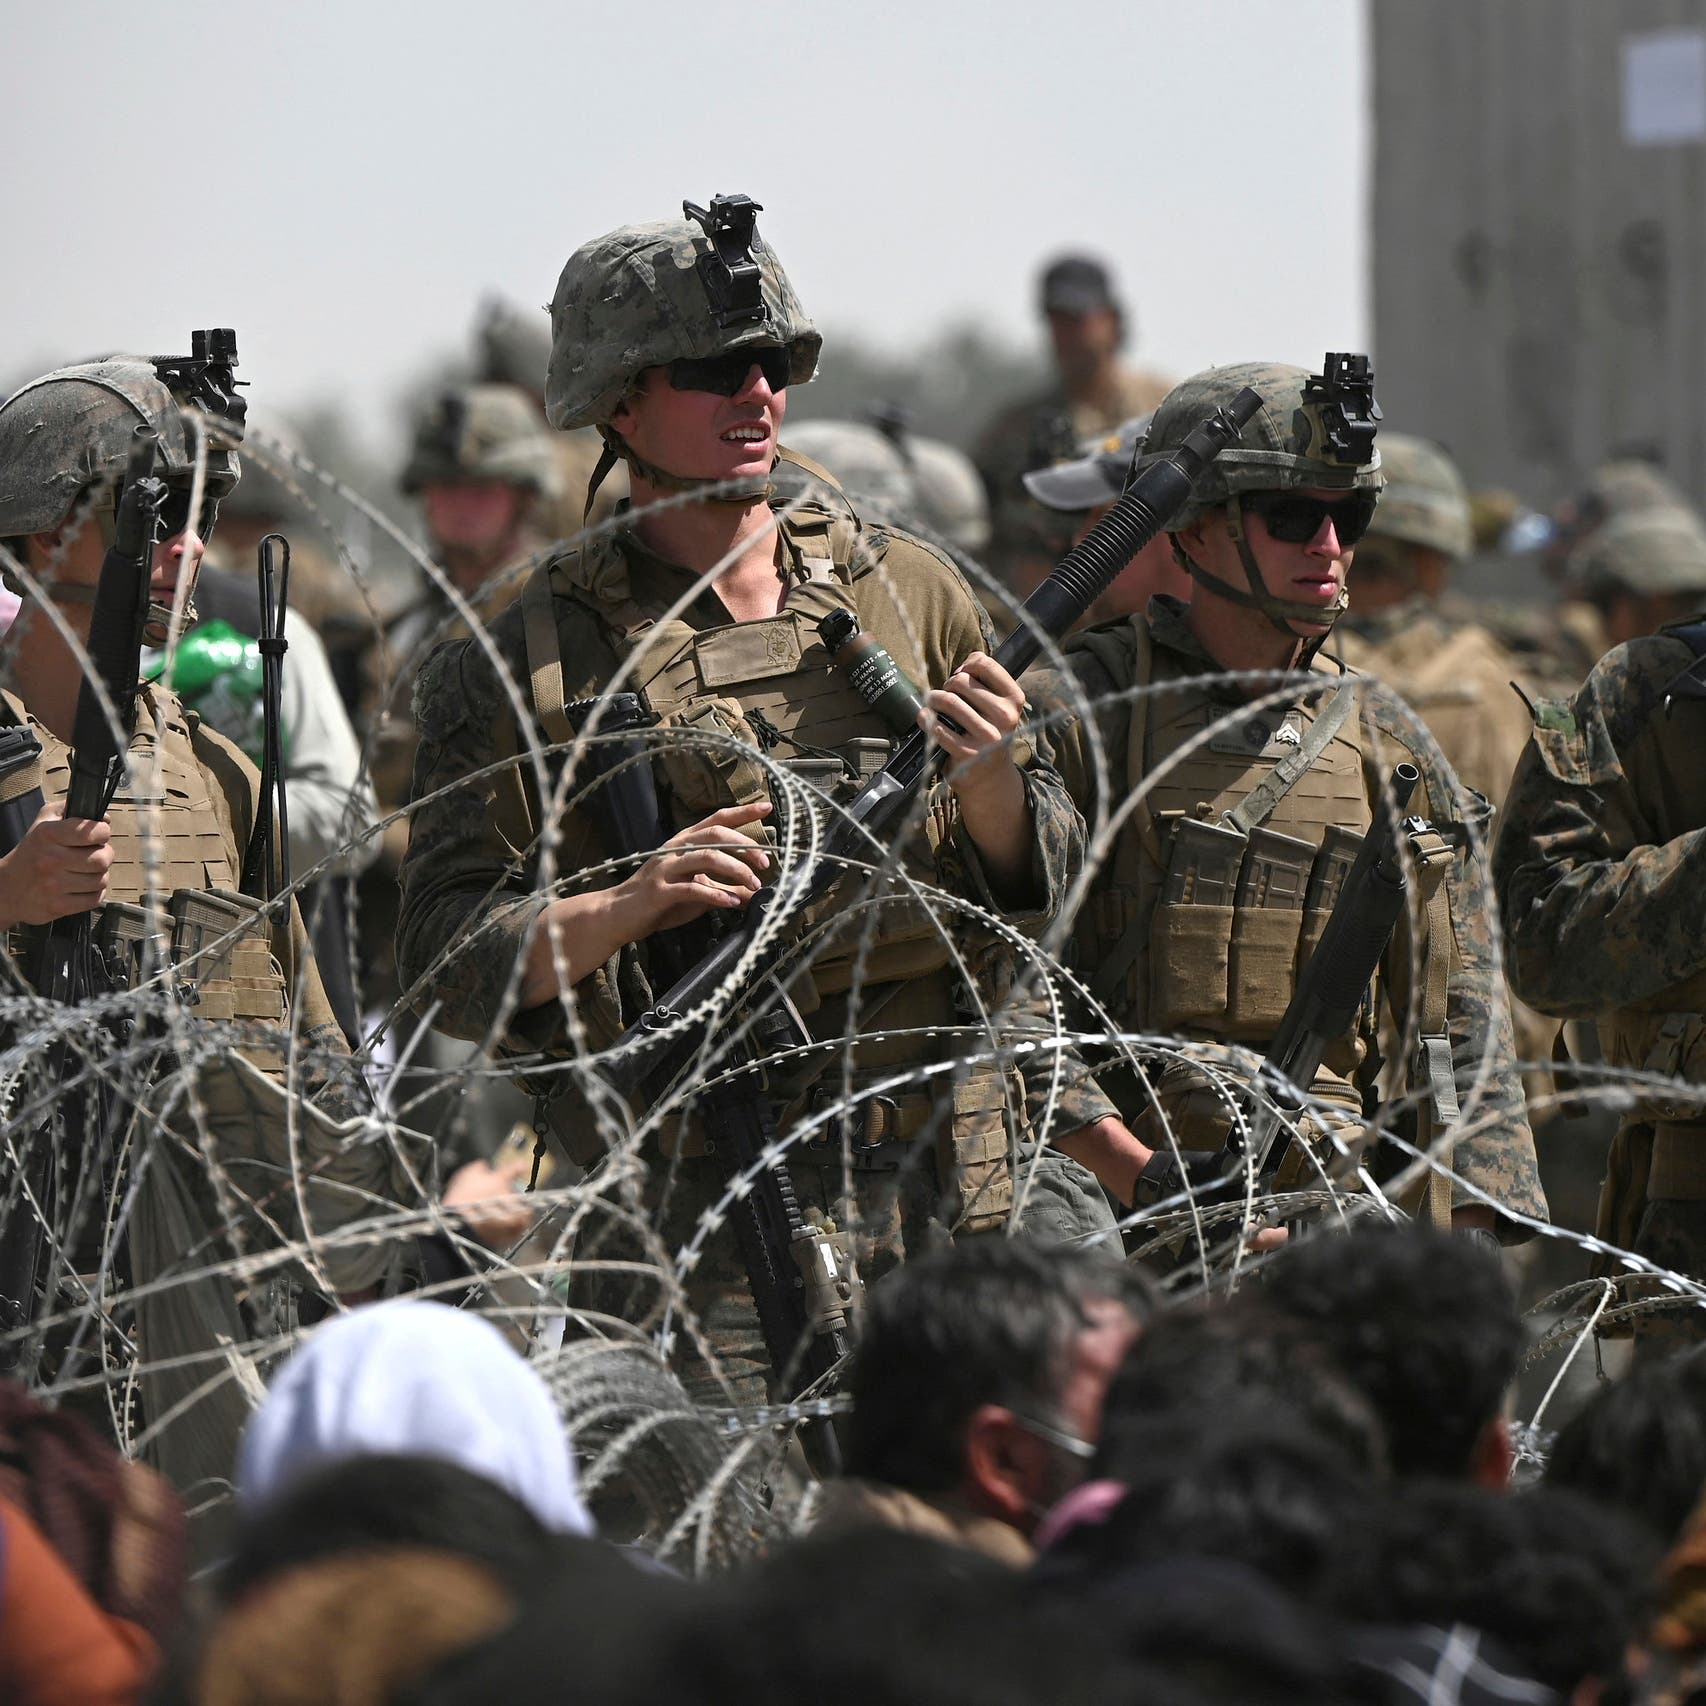 Why did Biden withdraw troops from Afghanistan?